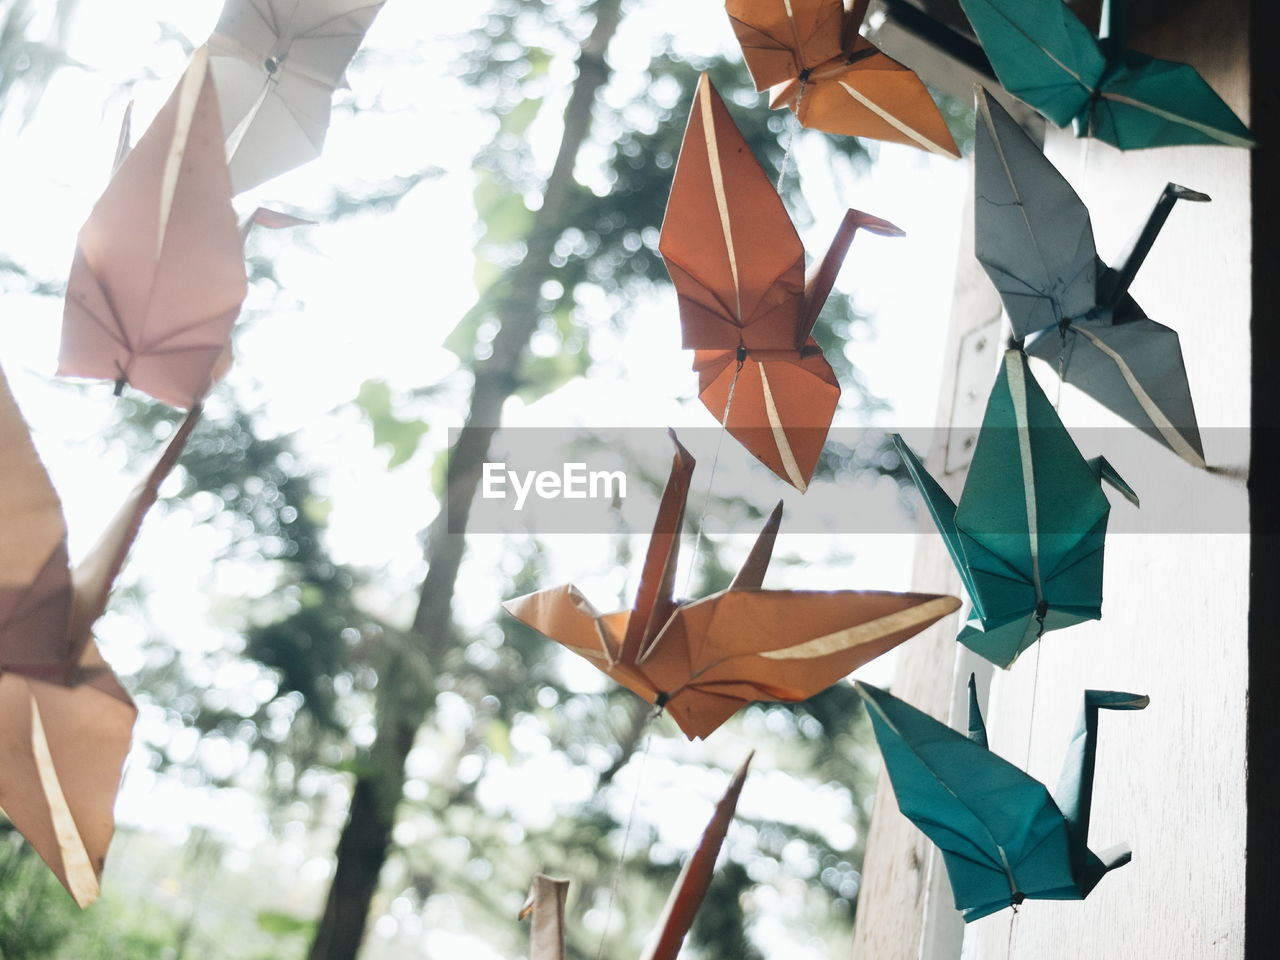 Low angle view of paper birds hanging outdoors